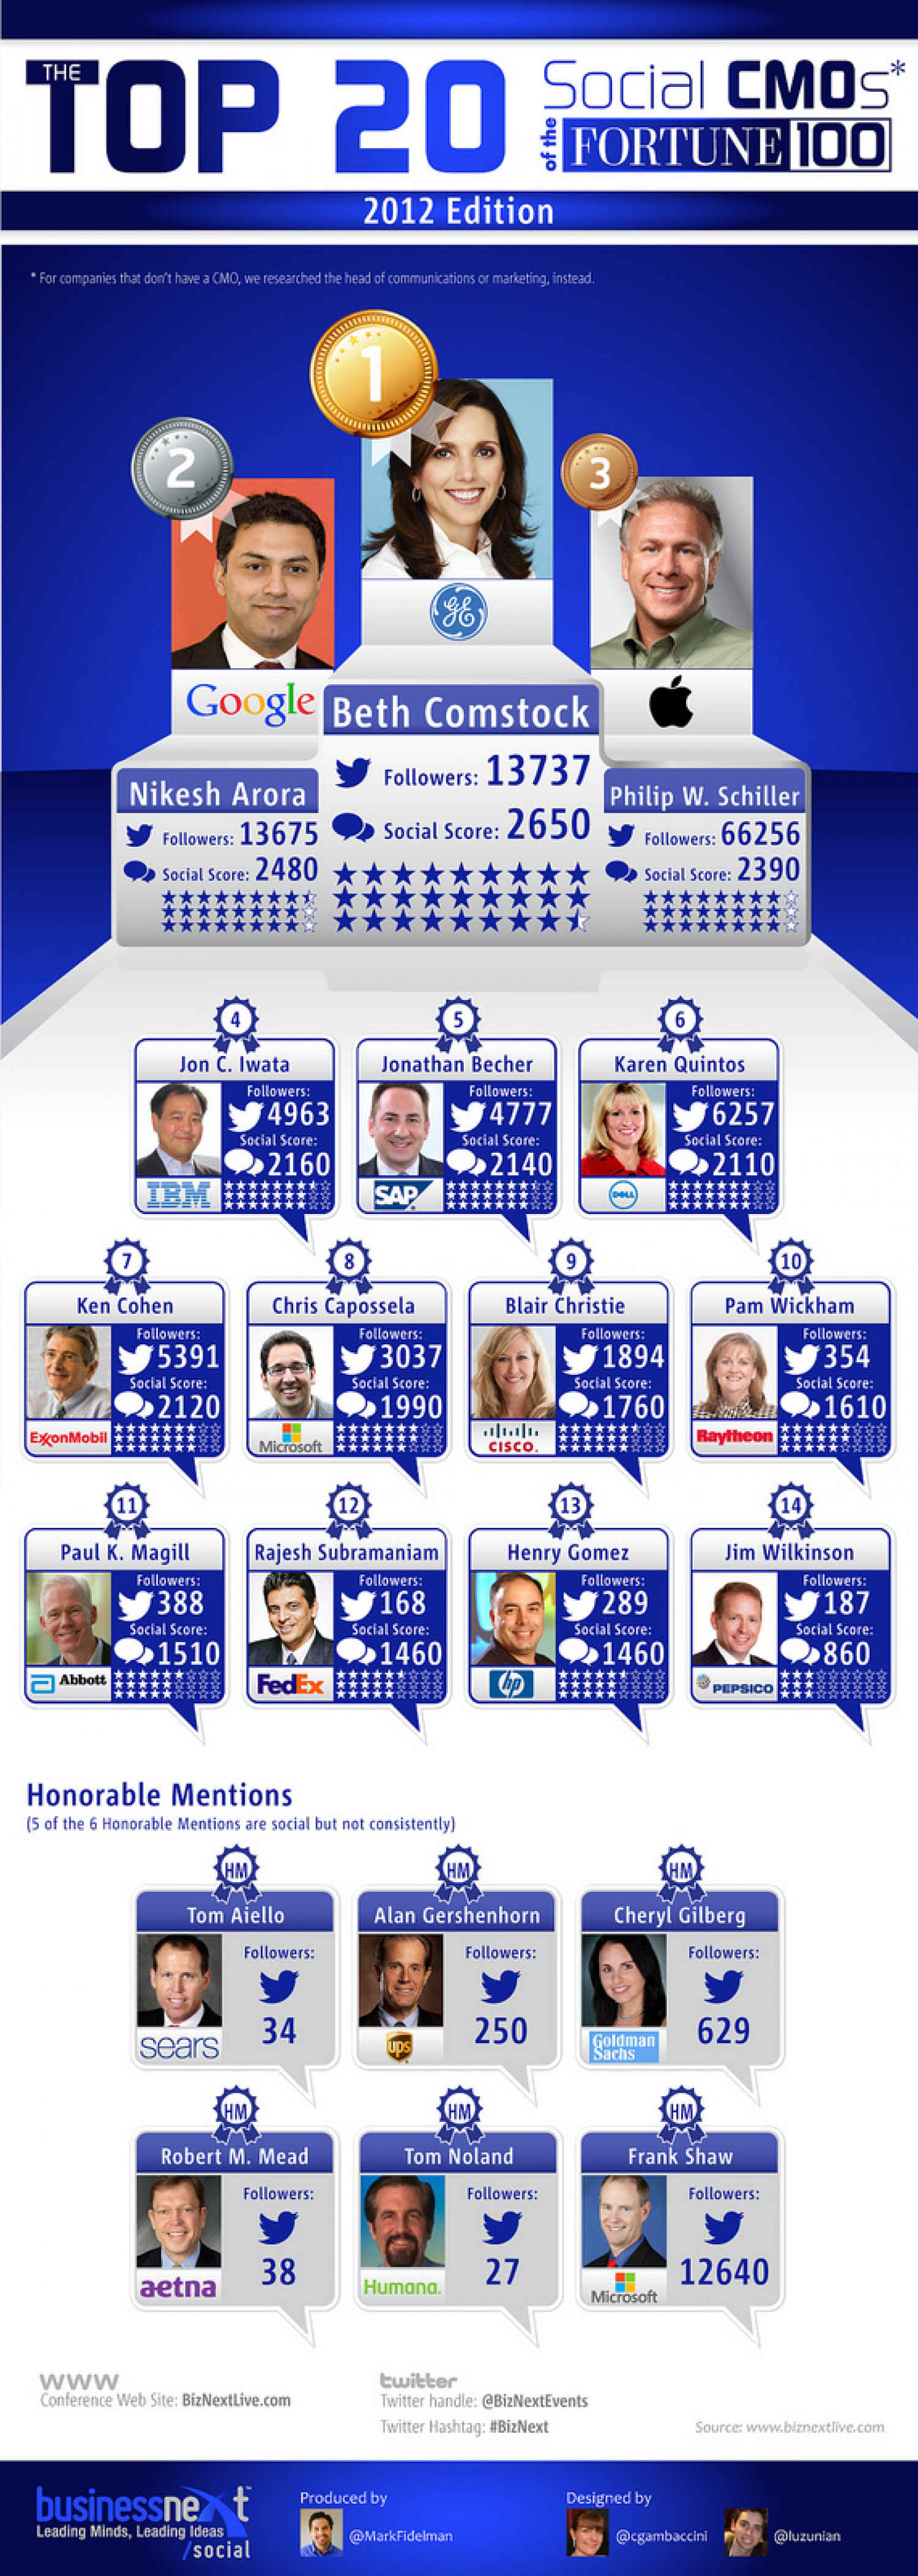 The Top 20 Most Social CMOs Infographic